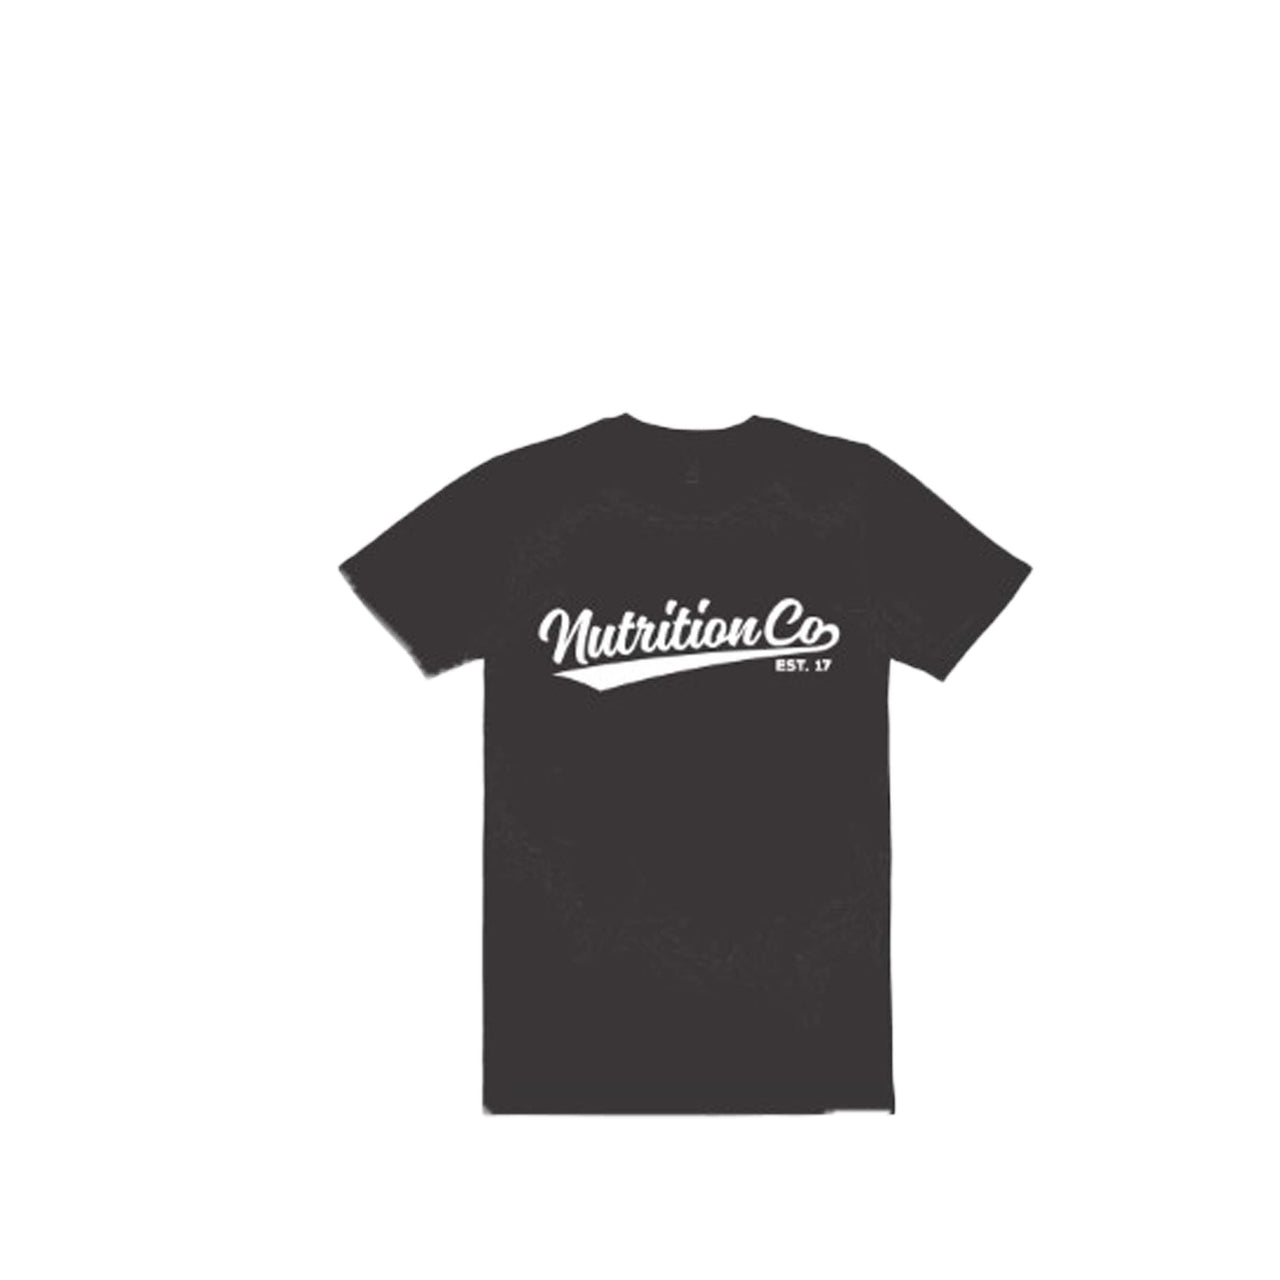 Nutrition Co white Baller Black Stone Tee